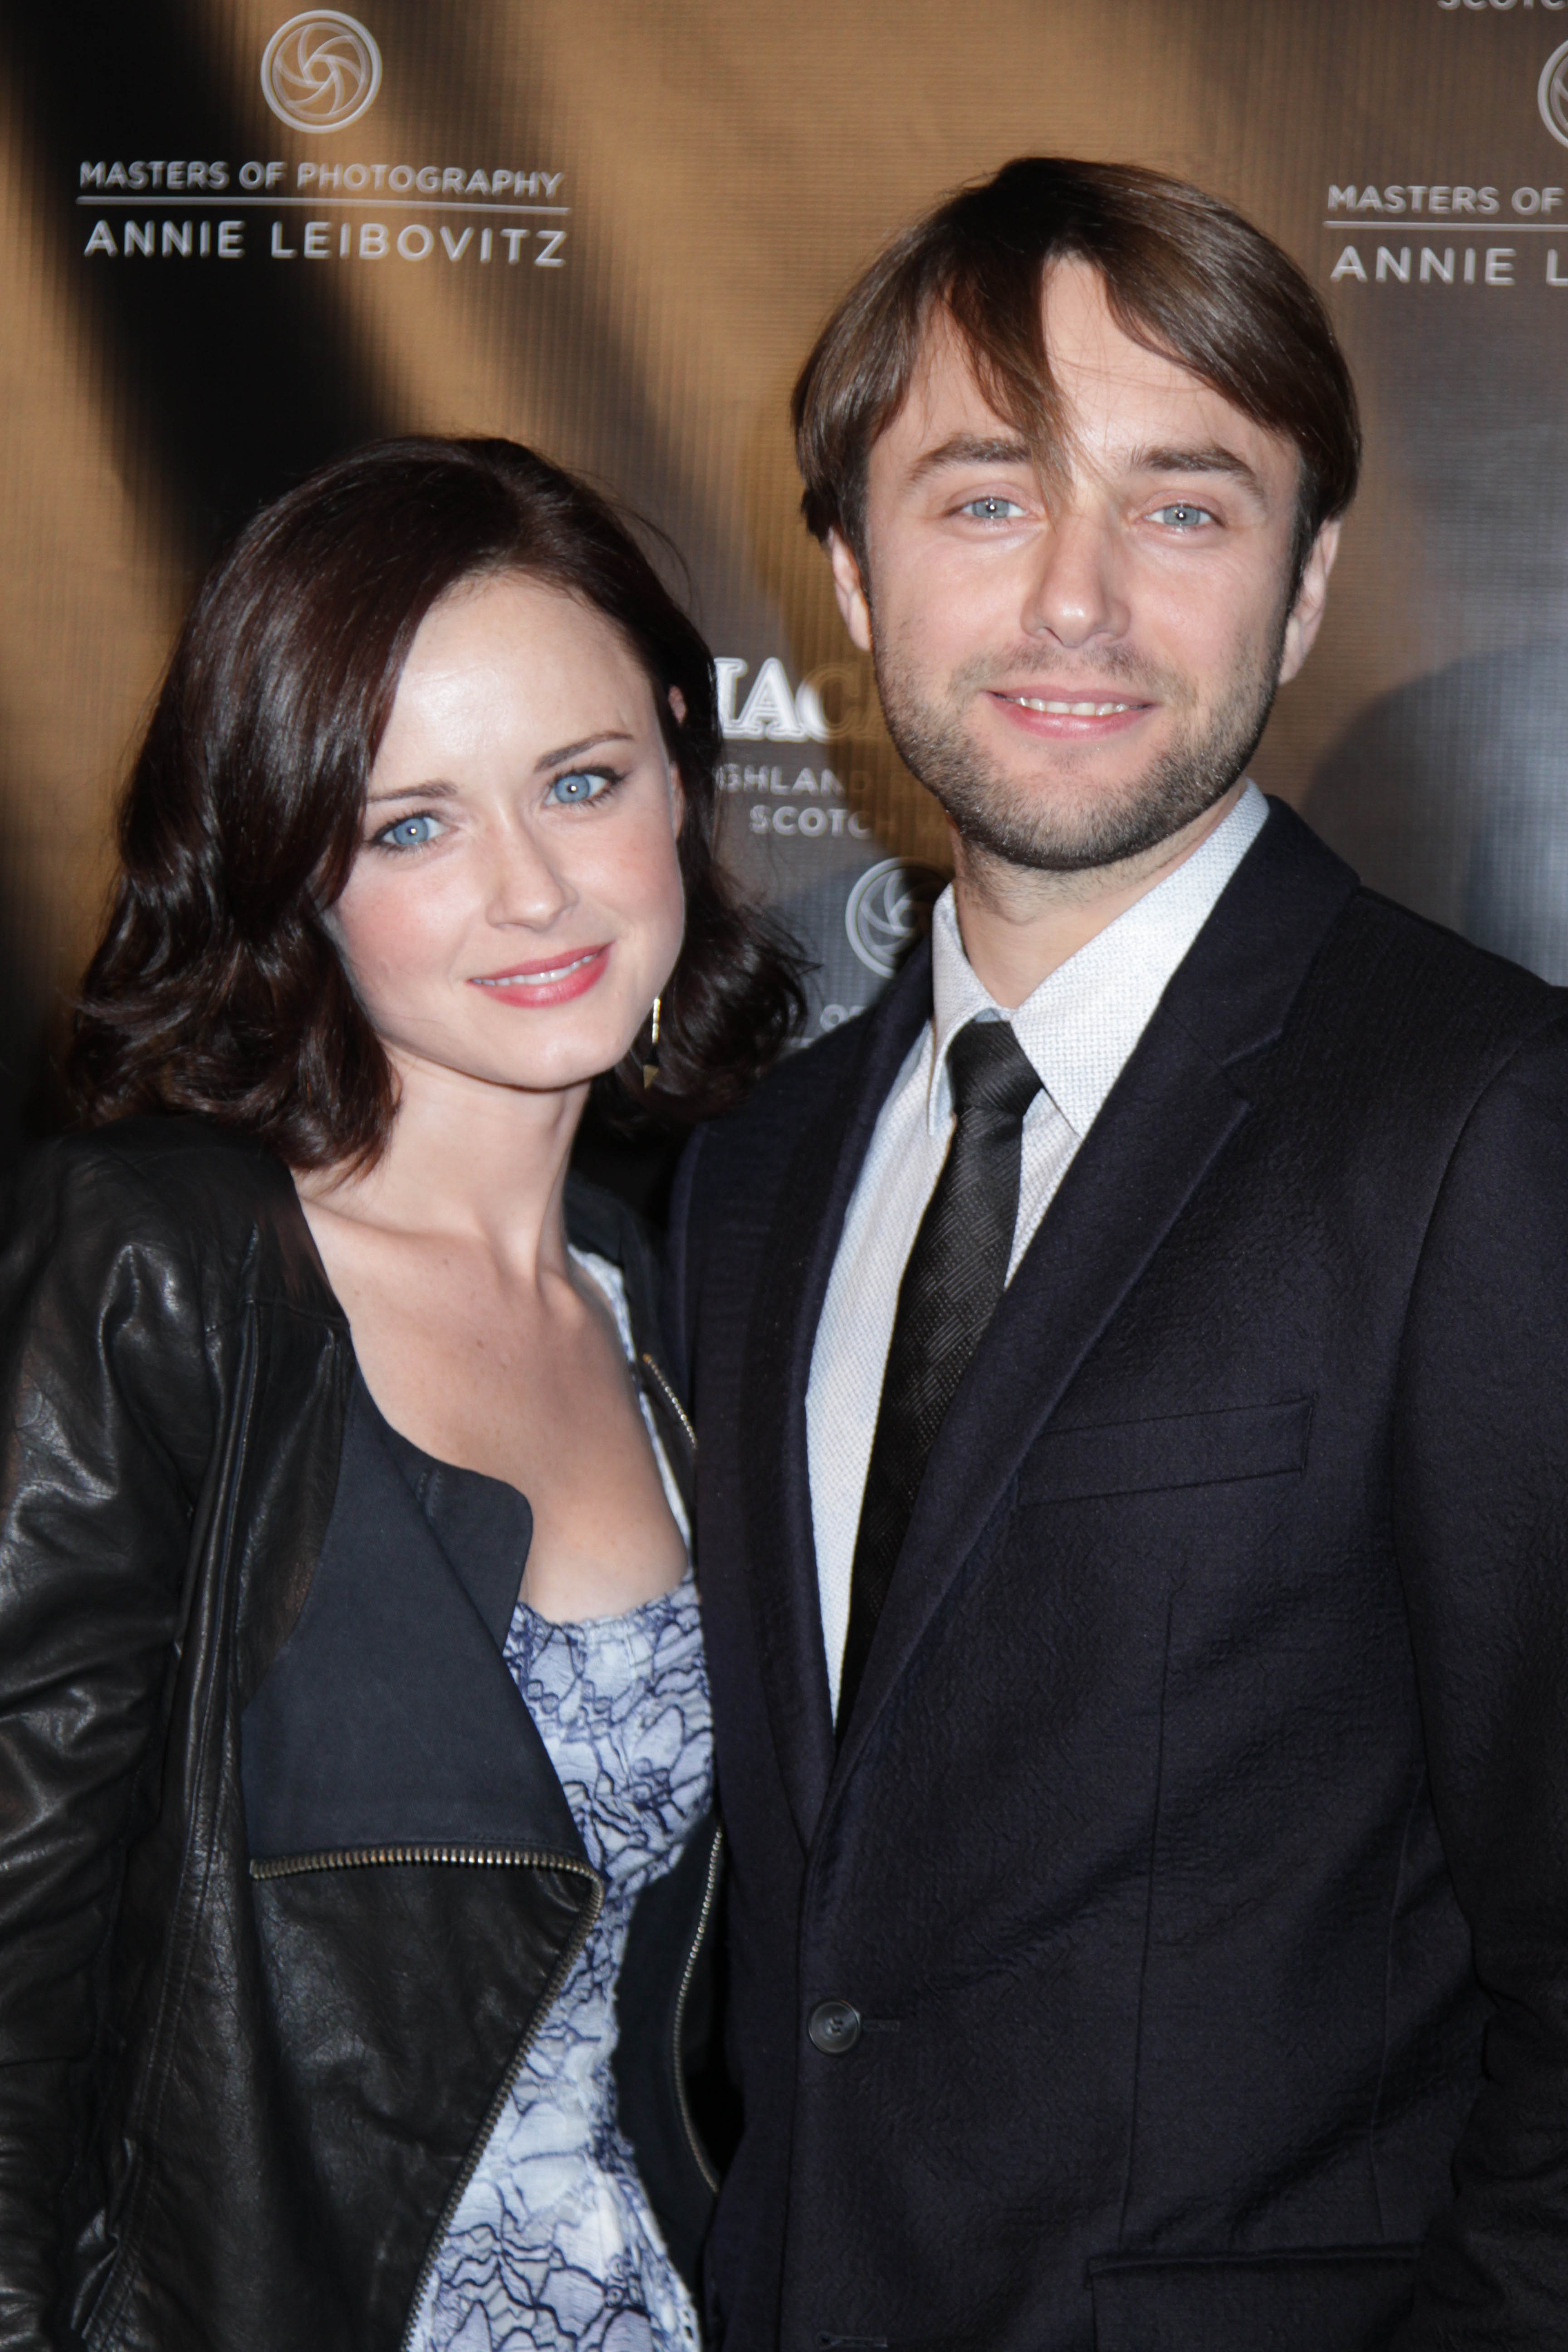 Alexis Bledel - The Macallan Masters Of Photography Series Launch - NYC - 101012_013.jpg